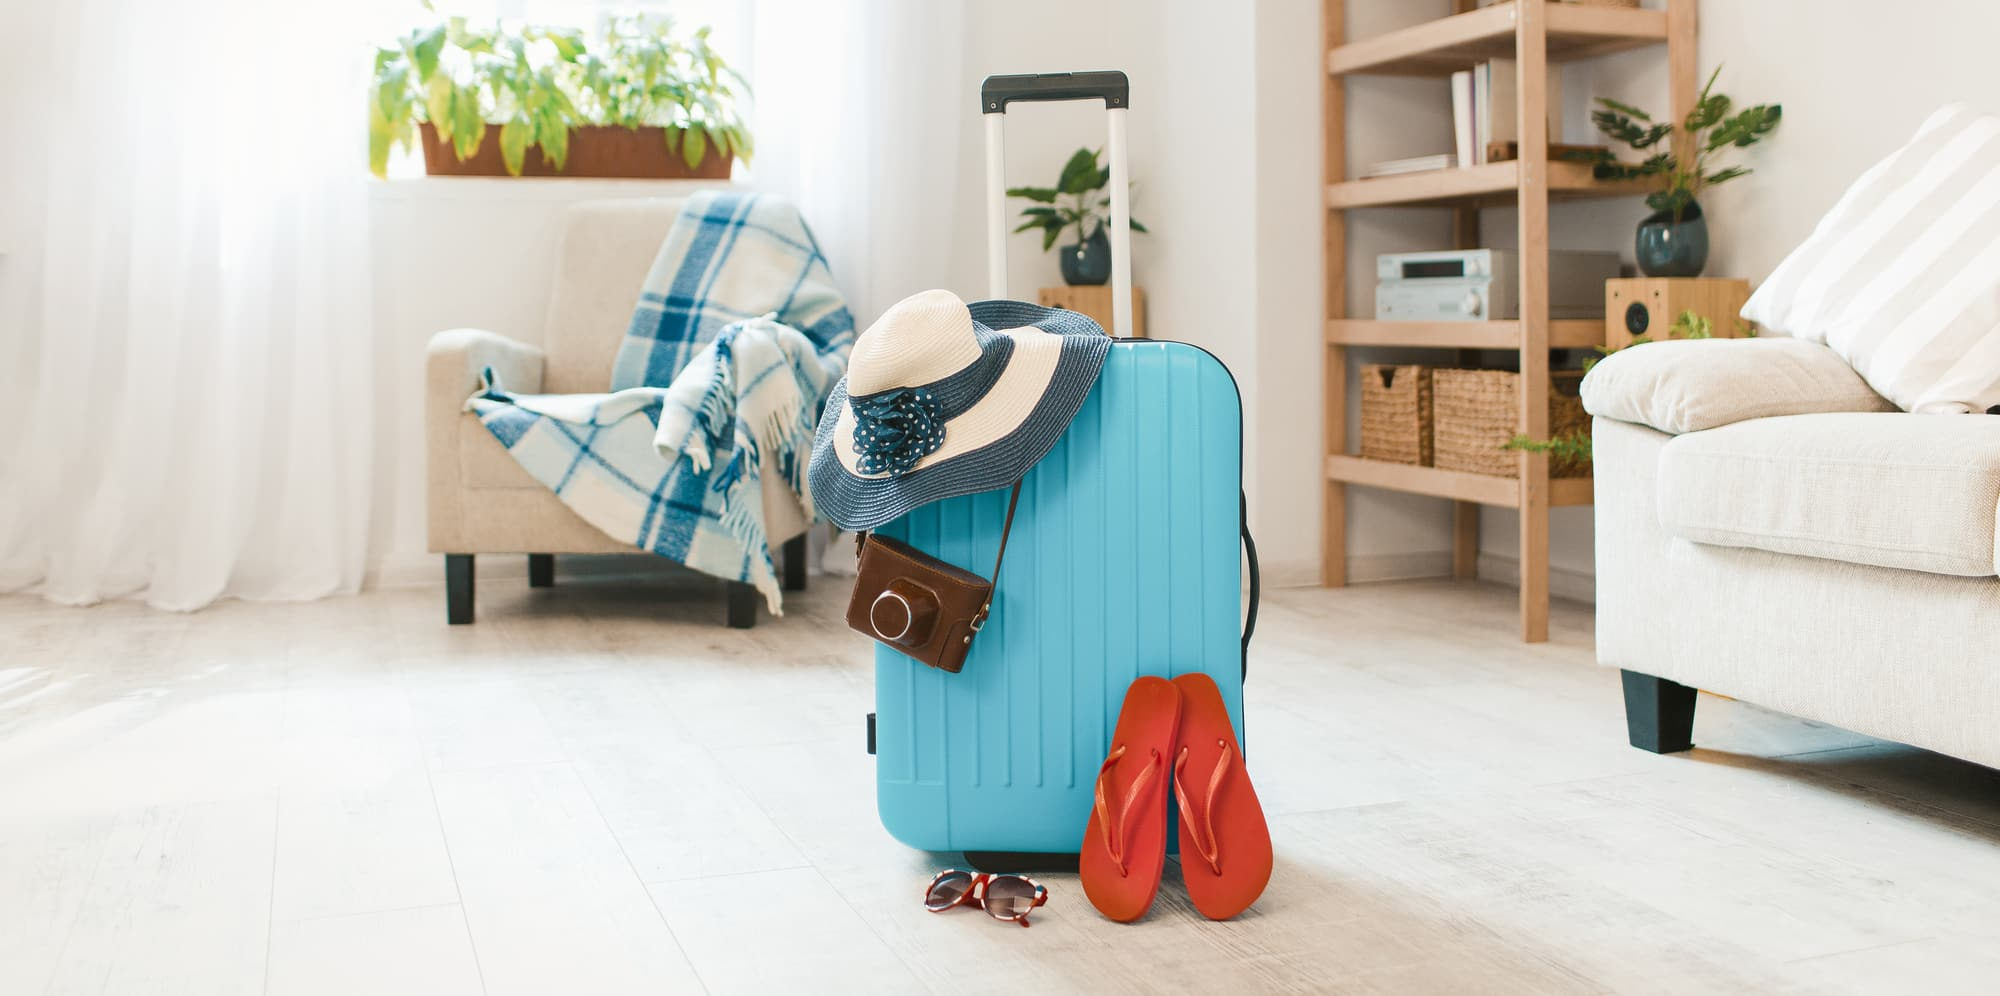 Blue suitcase with havaianas and hat at home interior.